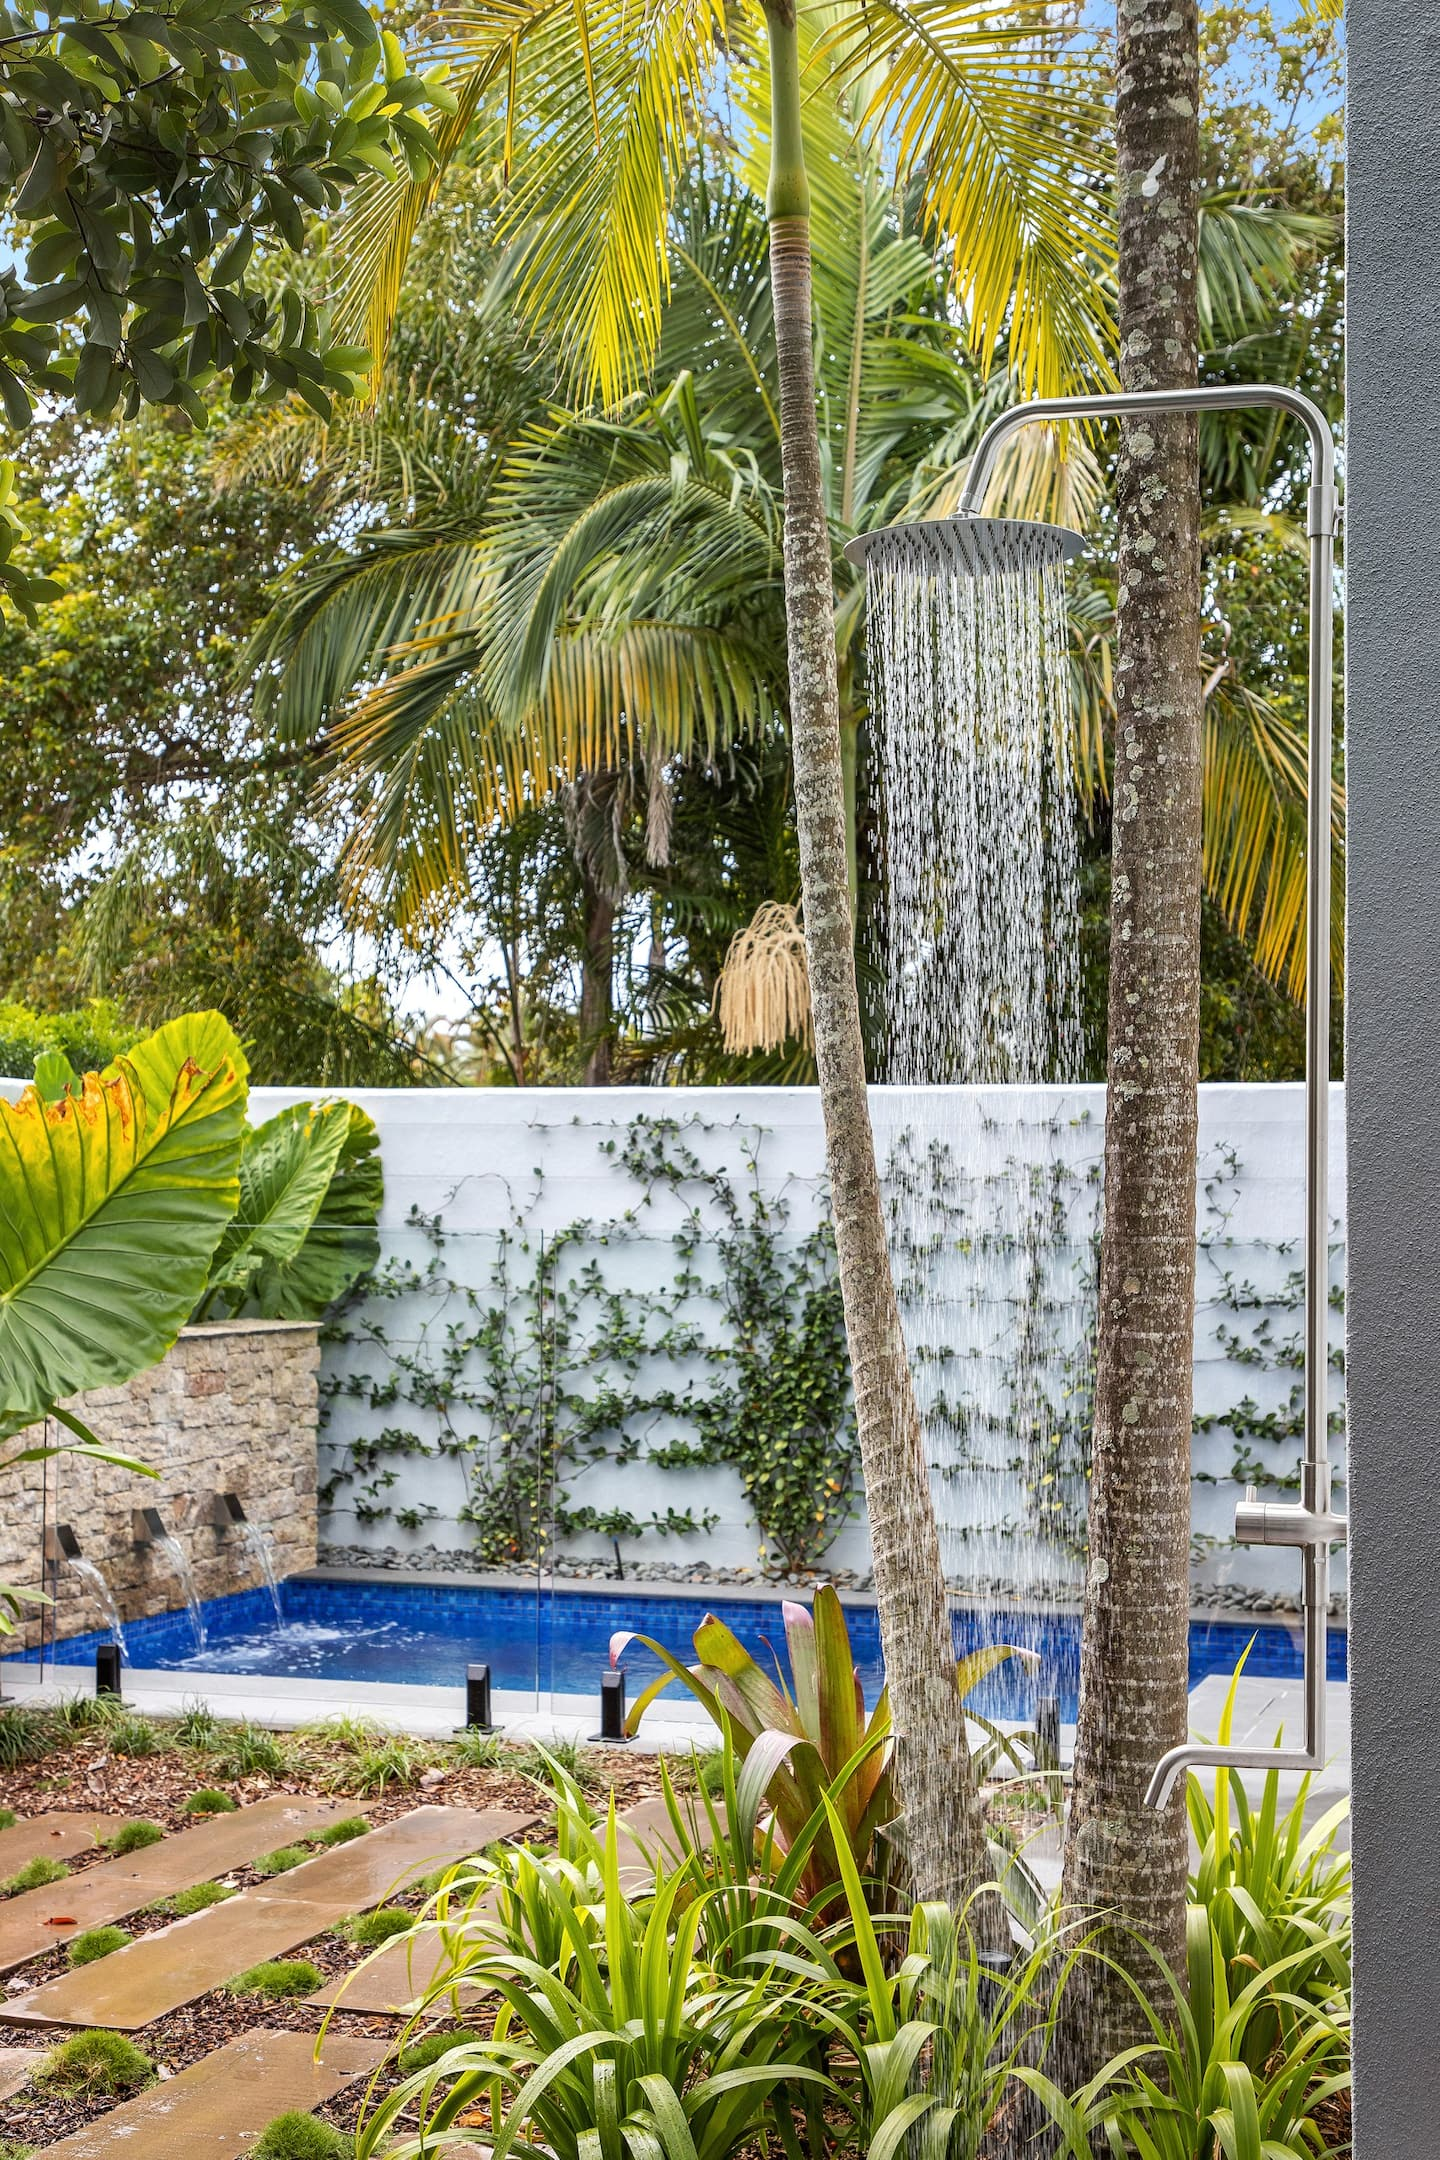 an outdoor shower with a pool in the background